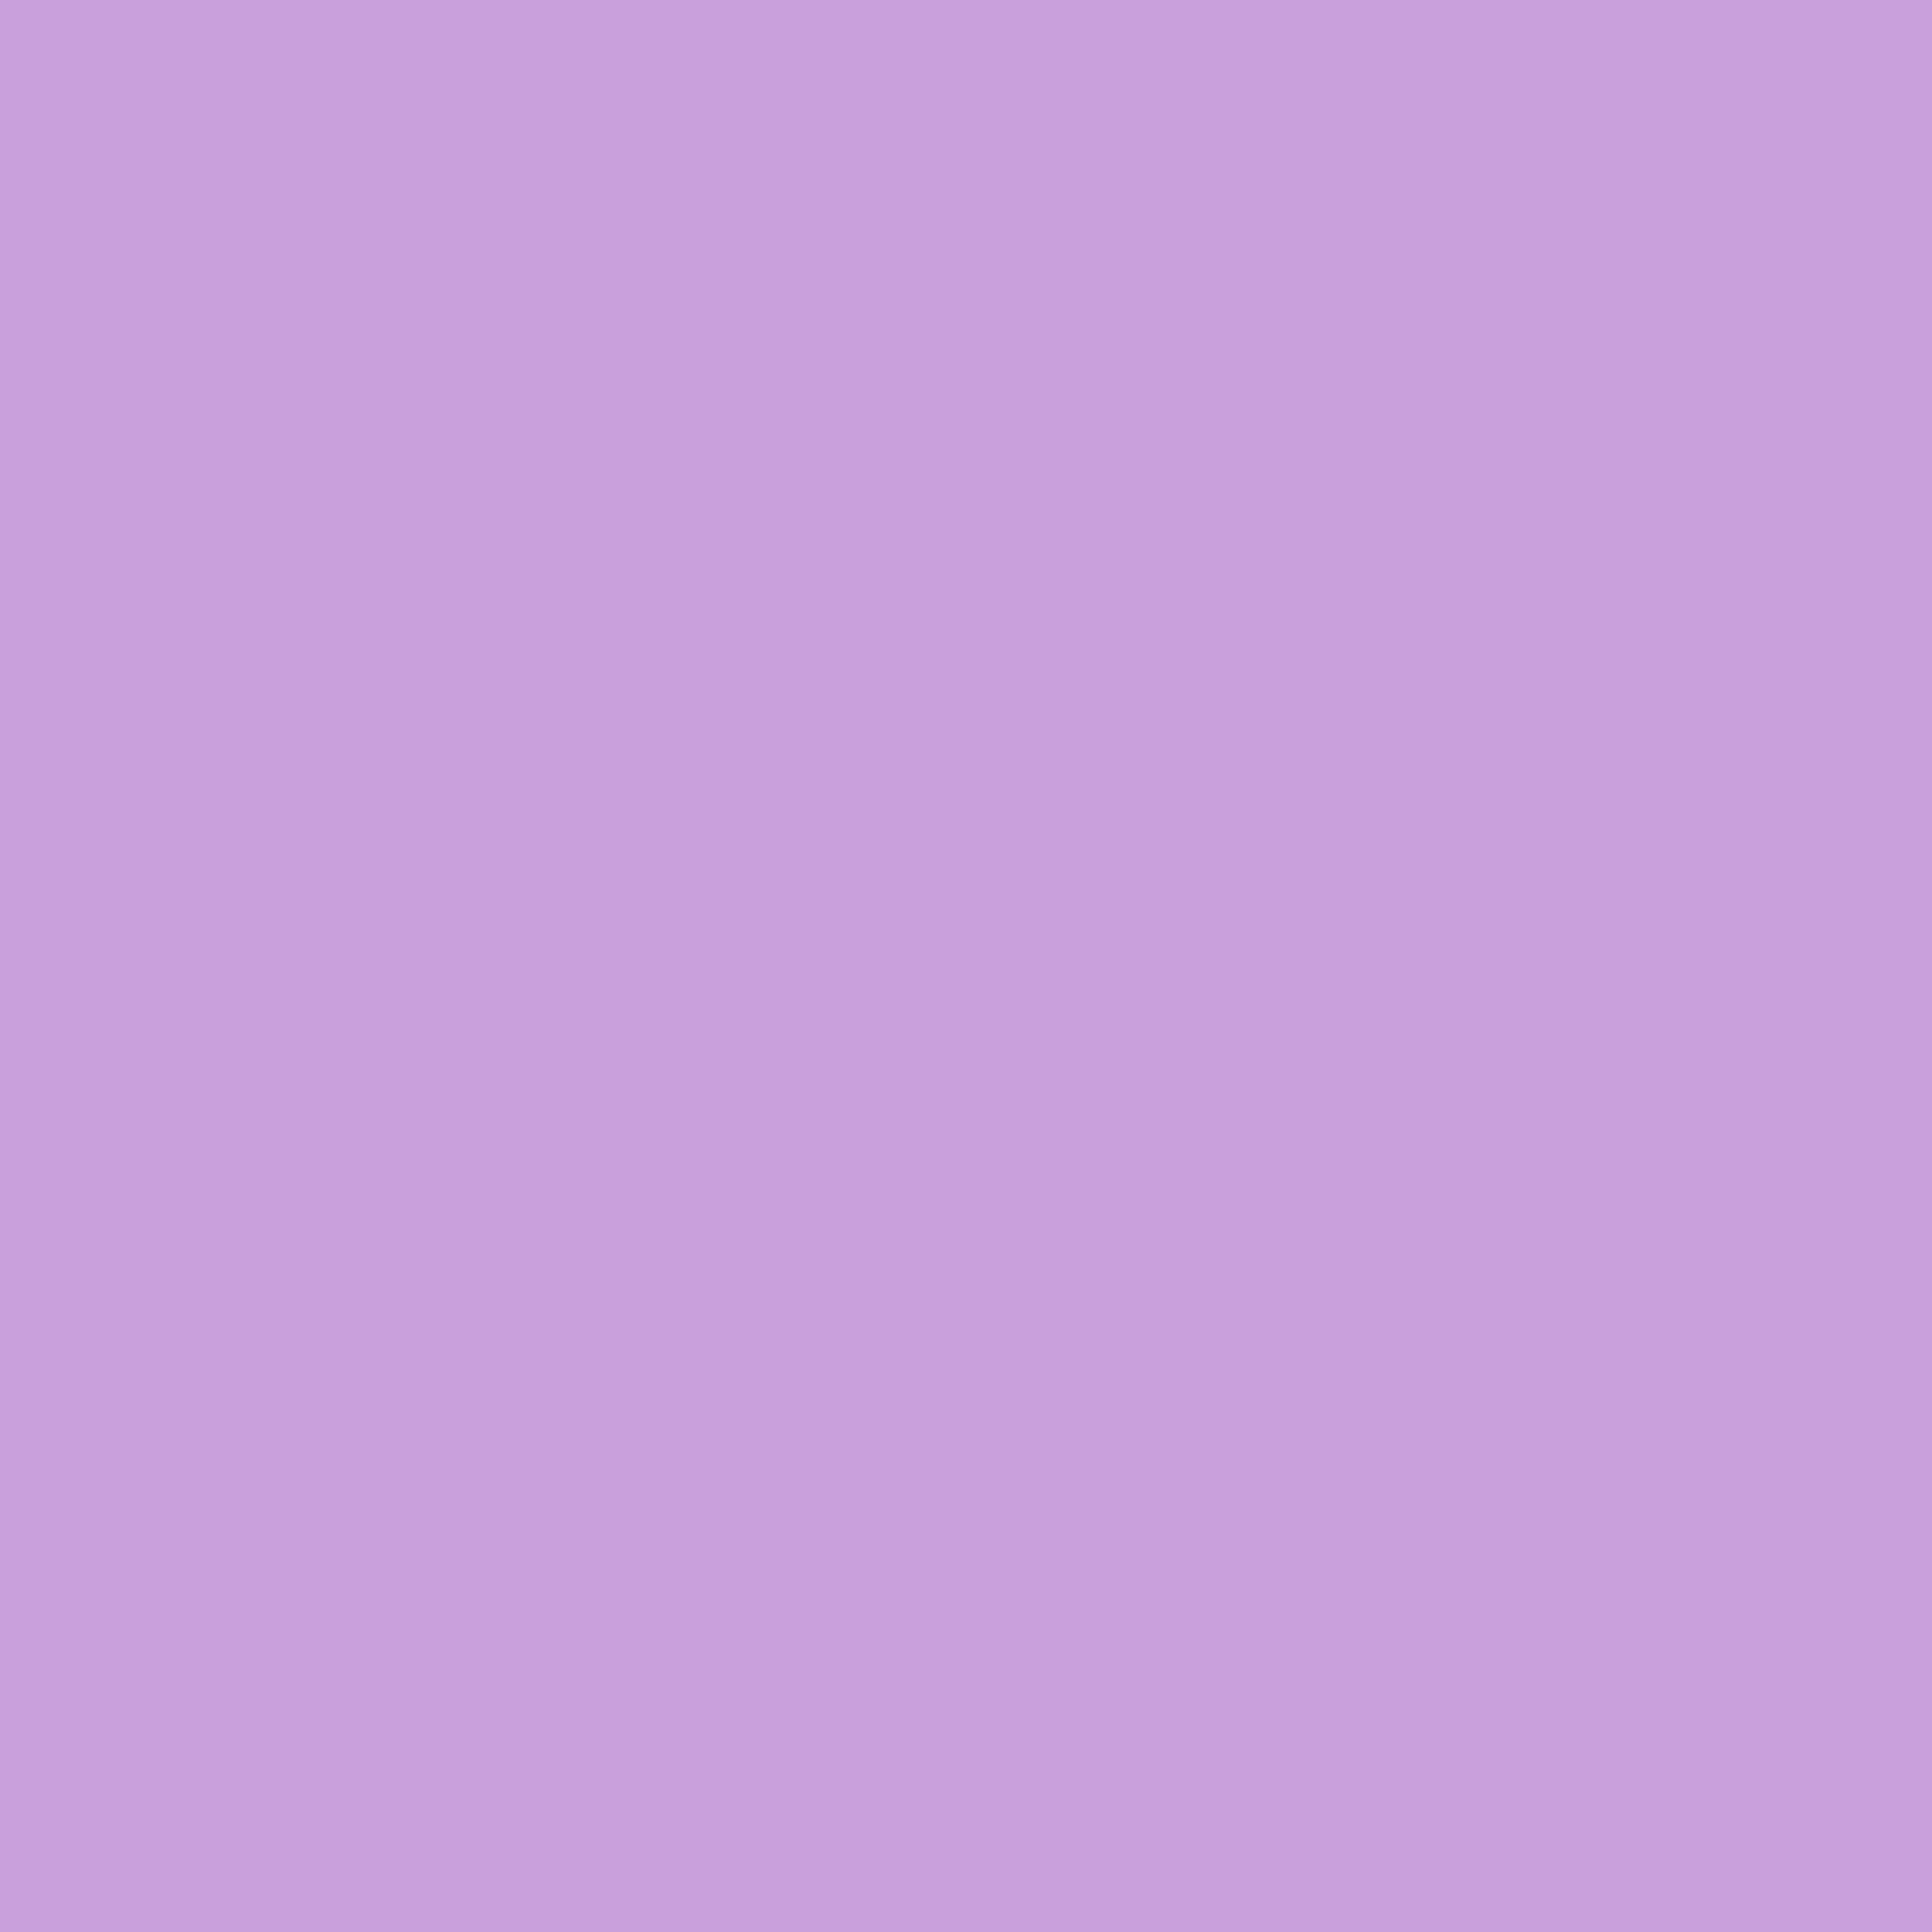 3600x3600 Wisteria Solid Color Background